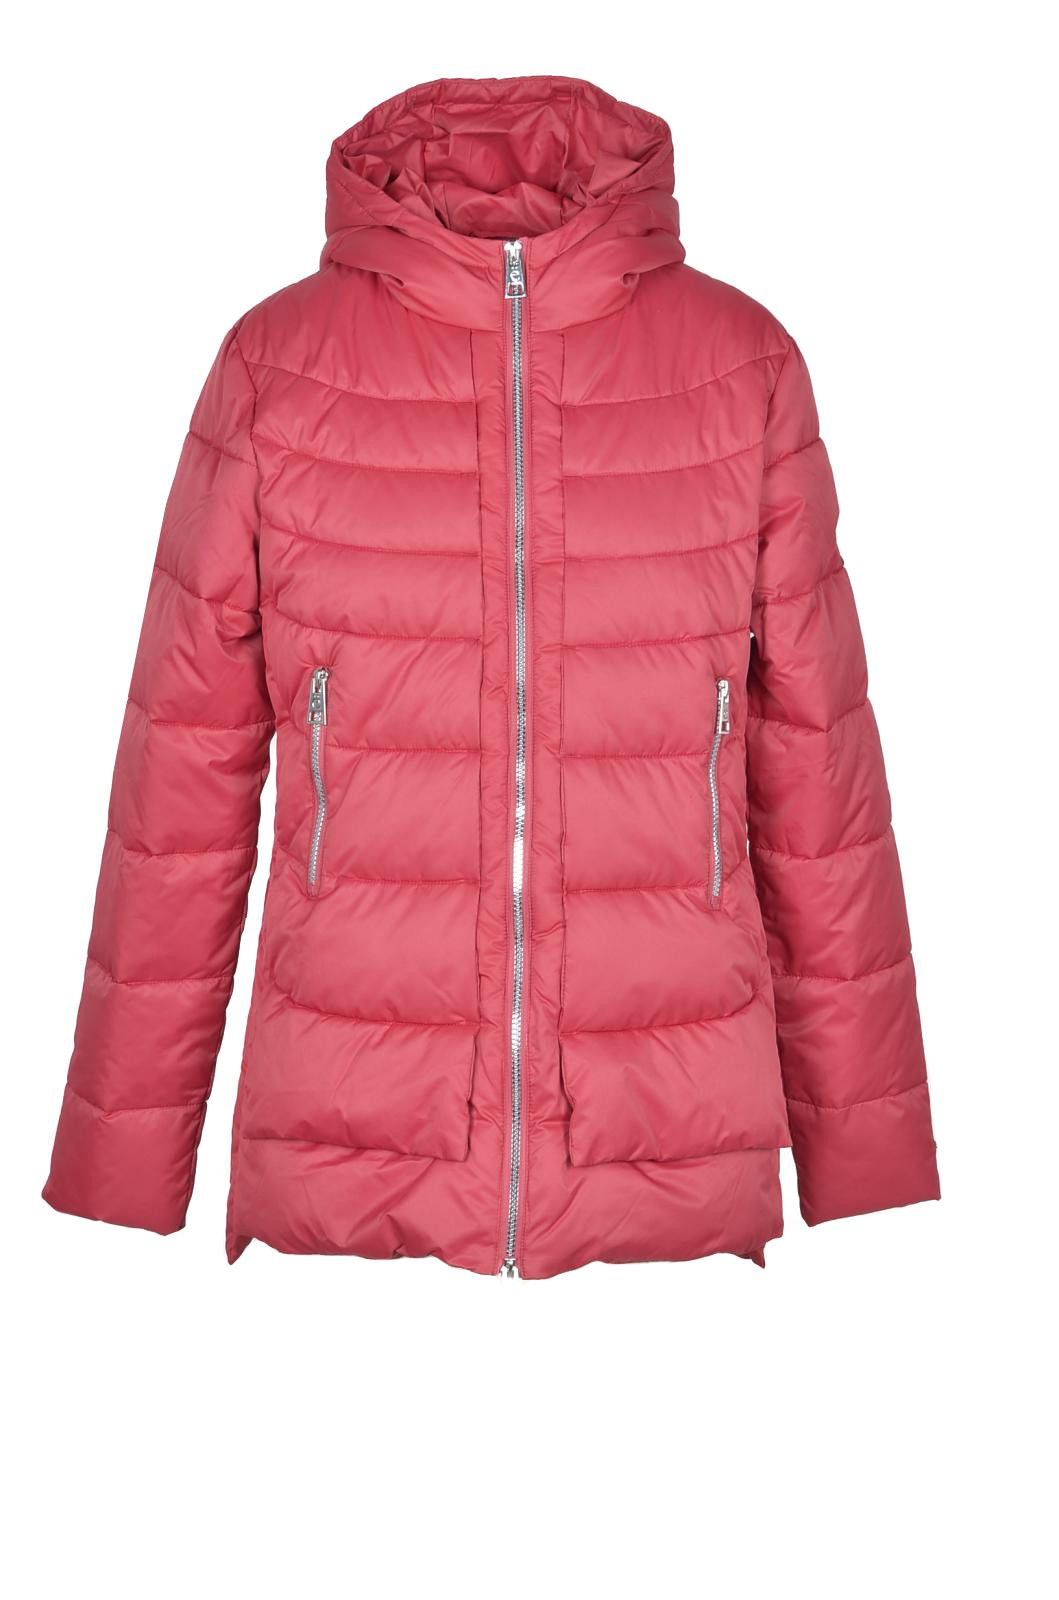 Gaelle Women's Jacket In Red